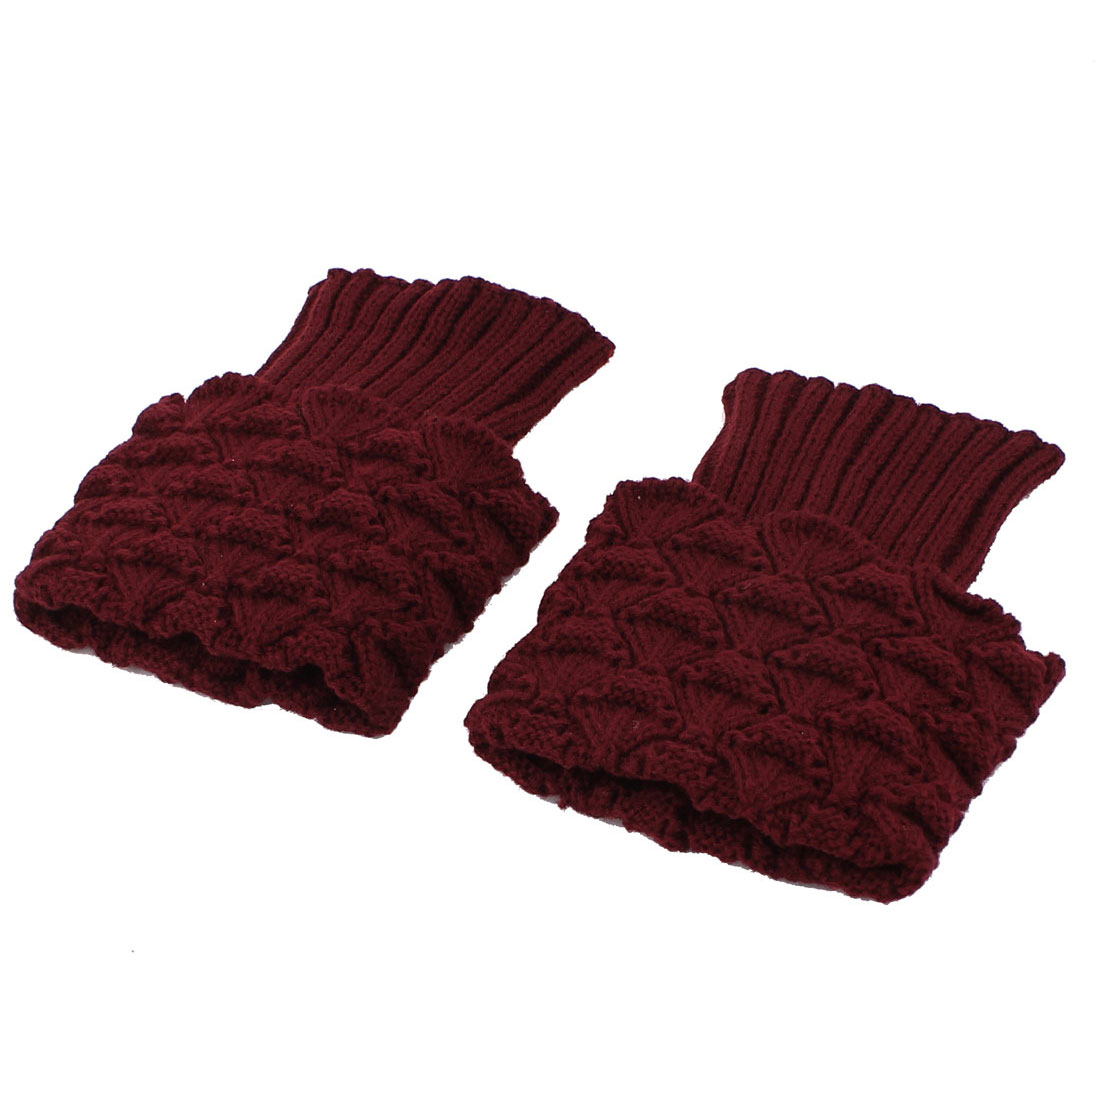 Women Winter Knitted Crochet Leg Warmers Boot Cover Cuff Socks Pair Burgundy